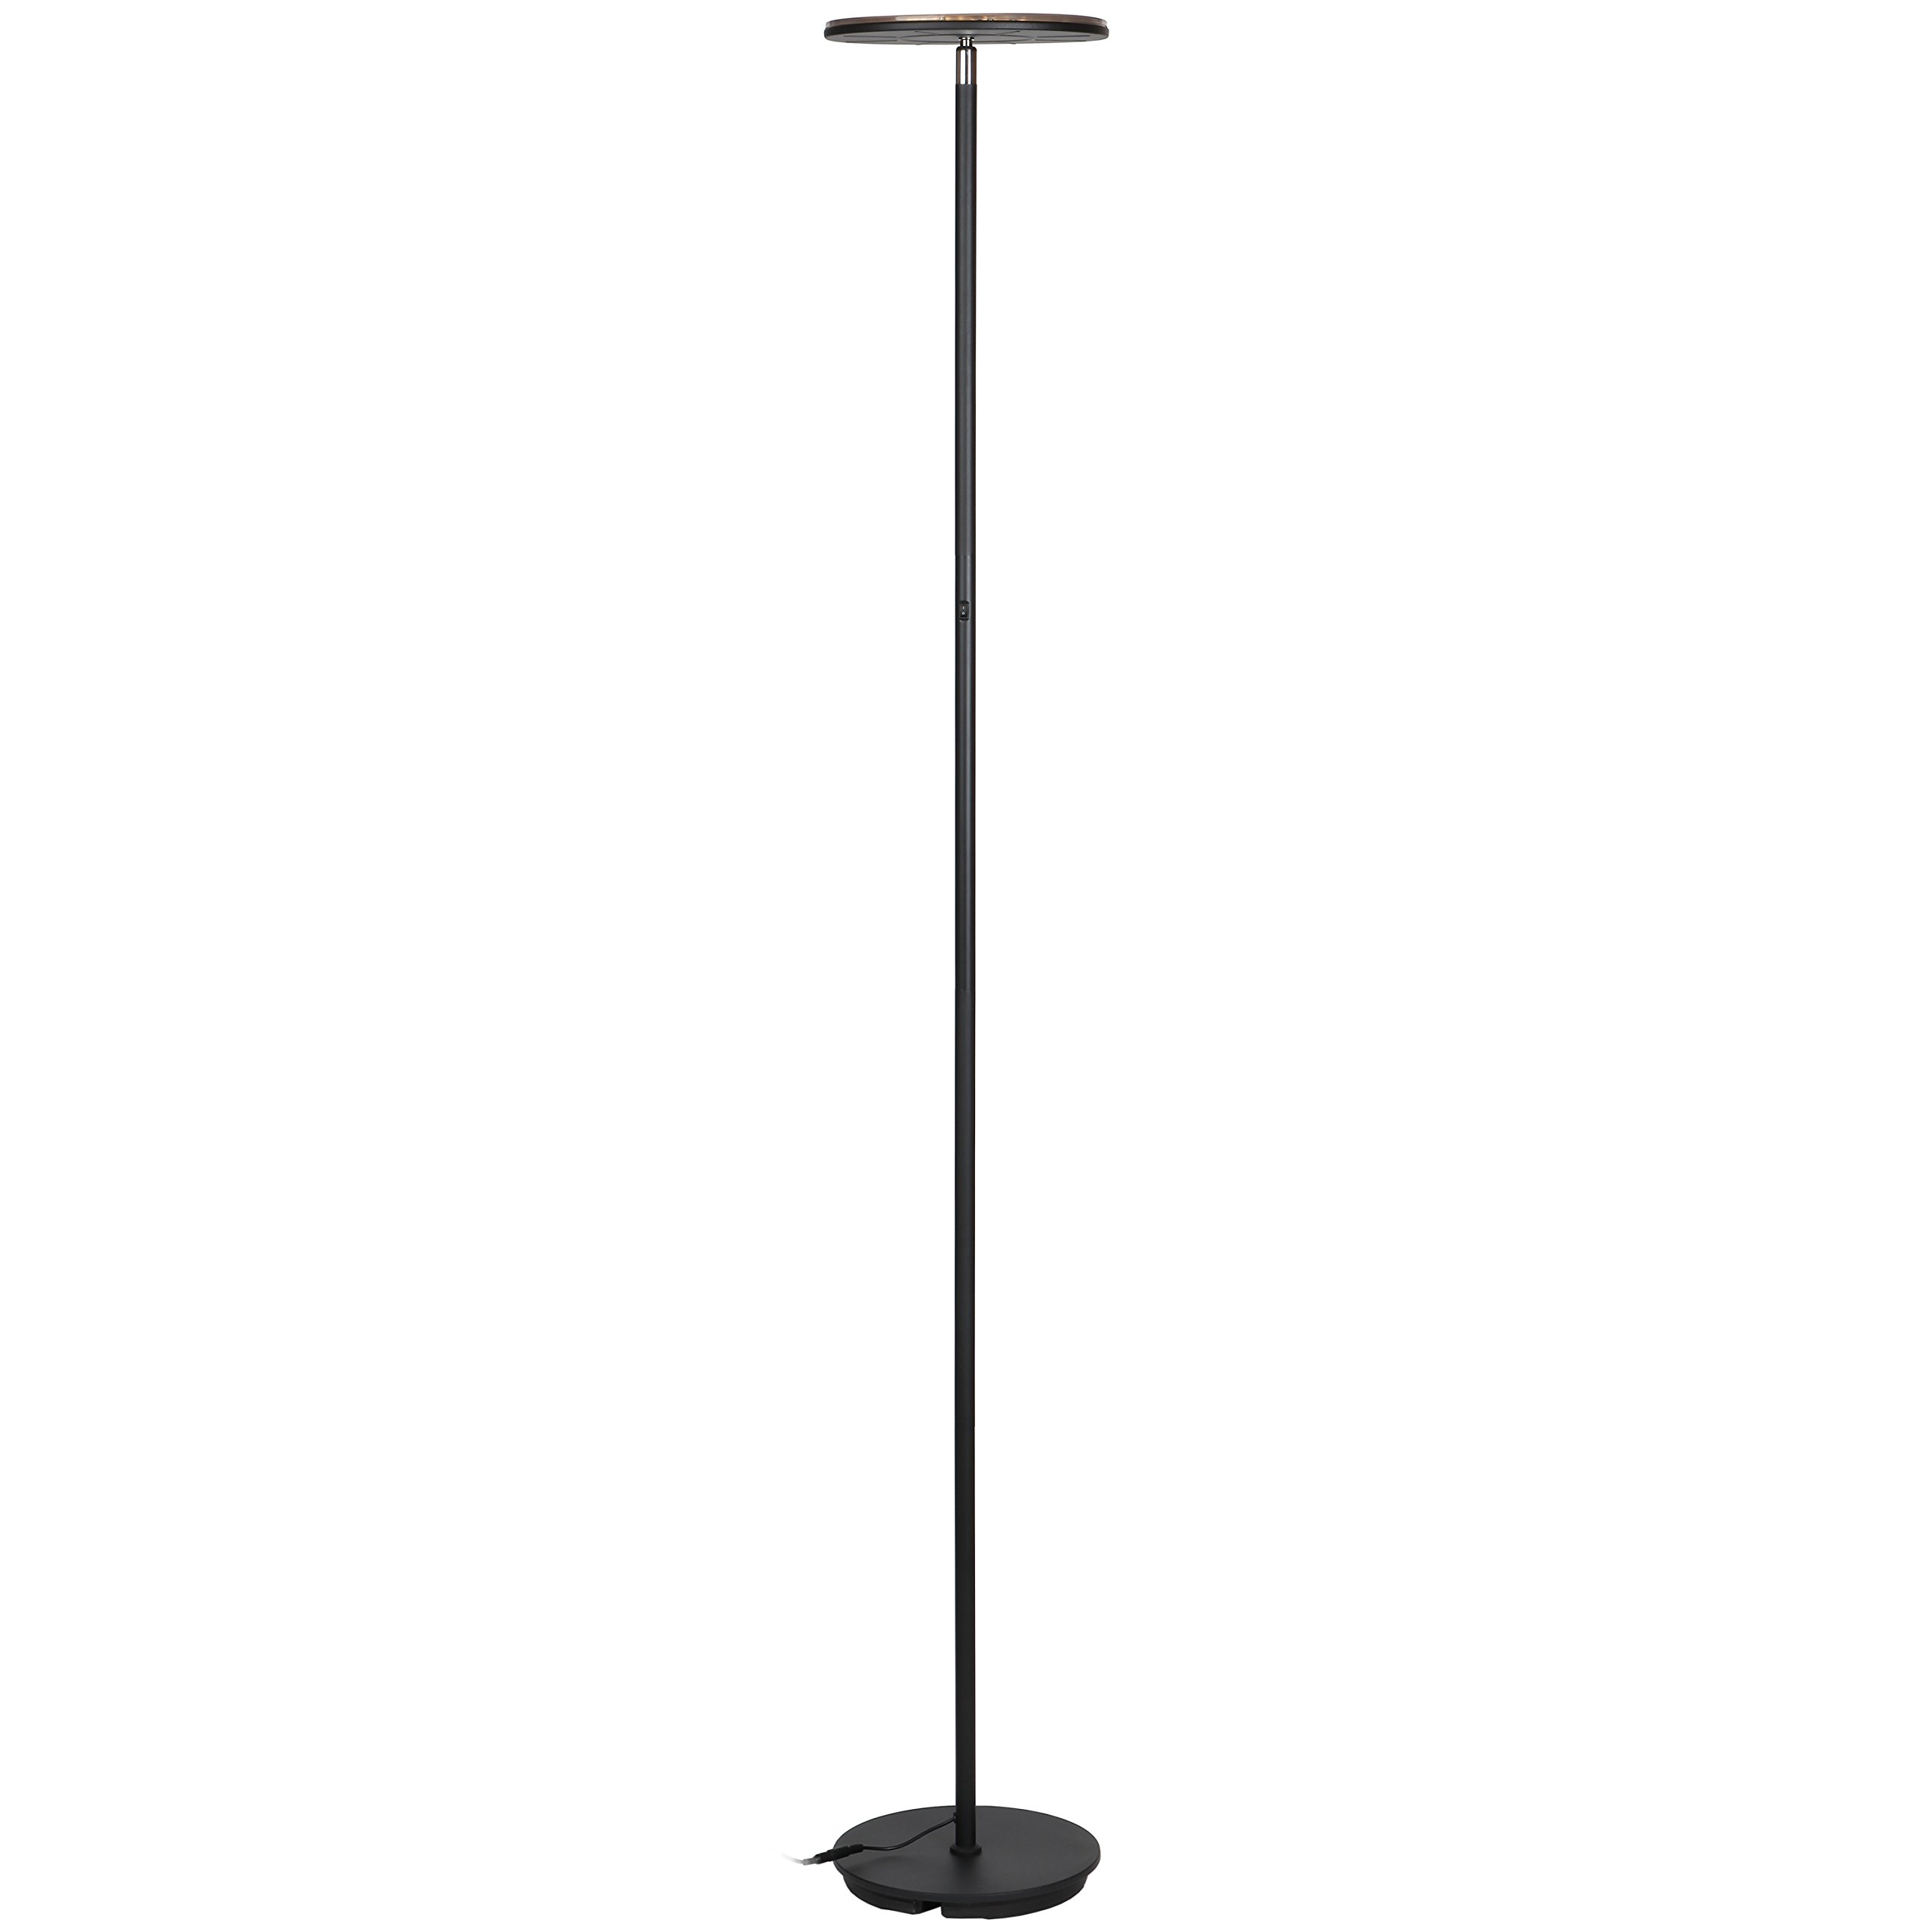 Brightech Kuler Sky Color Changing Torchiere LED Floor Lamp - Dimmable, iOs & Android App Remote Control Light - Lamp for Living Rooms, Game Rooms & Bedrooms - Adjustable Pivoting Head - Black by Brightech (Image #3)